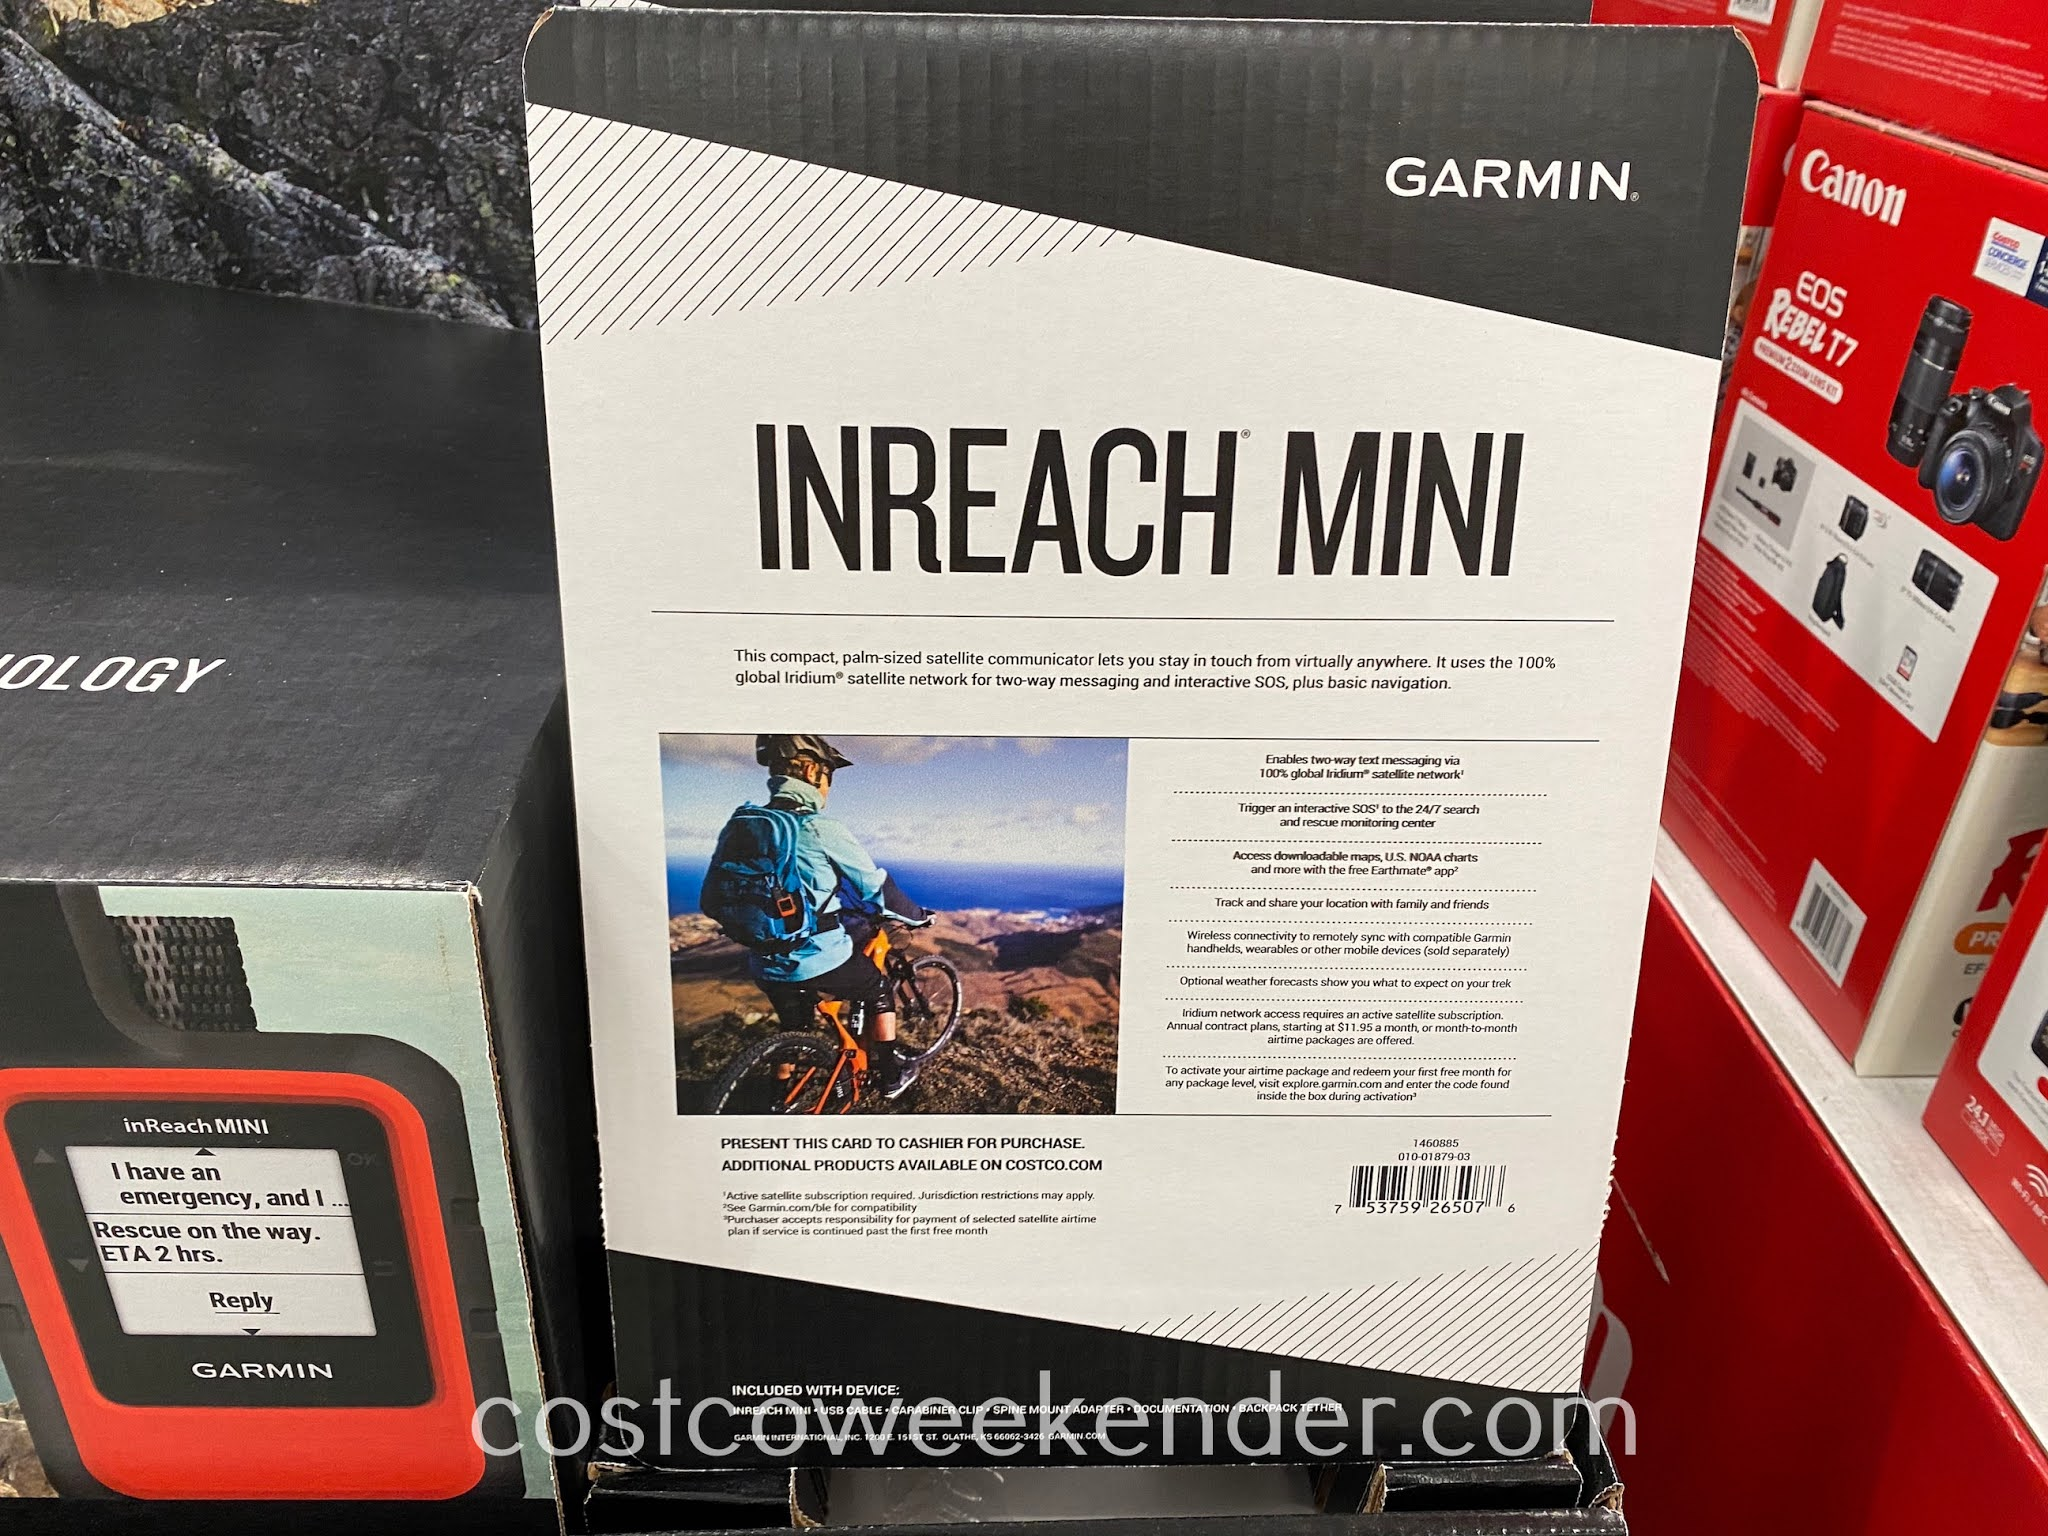 Costco 1460885 - Garmin inReach Mini Bundle: great for the backcountry and essential in an emergency